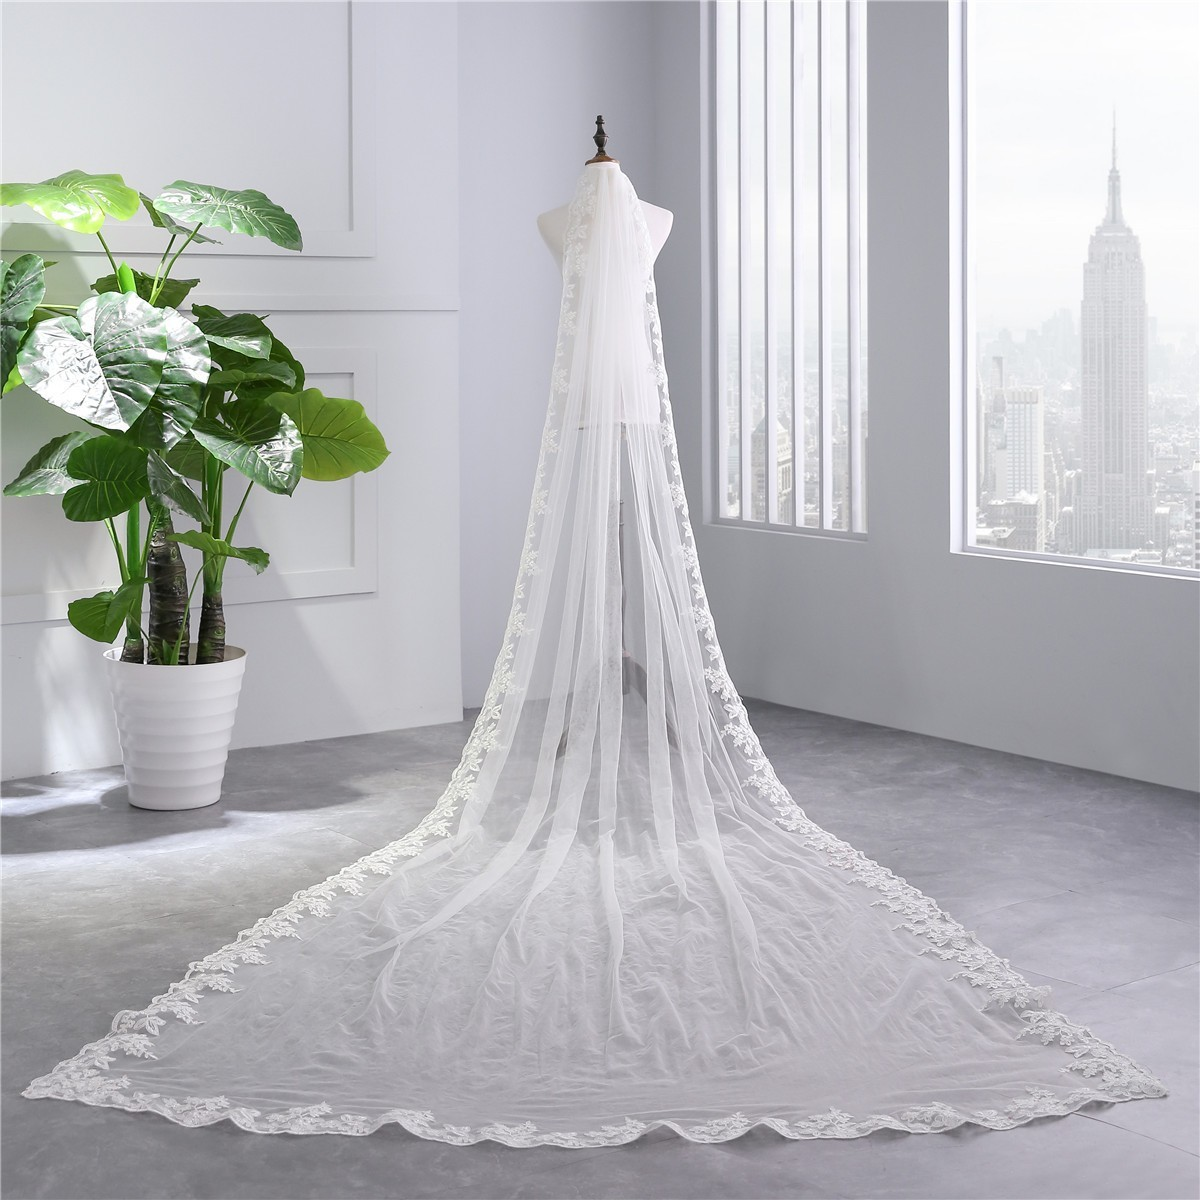 Royal One tier Tulle Lace Wedding Bridal Monarch Cathedral Veil